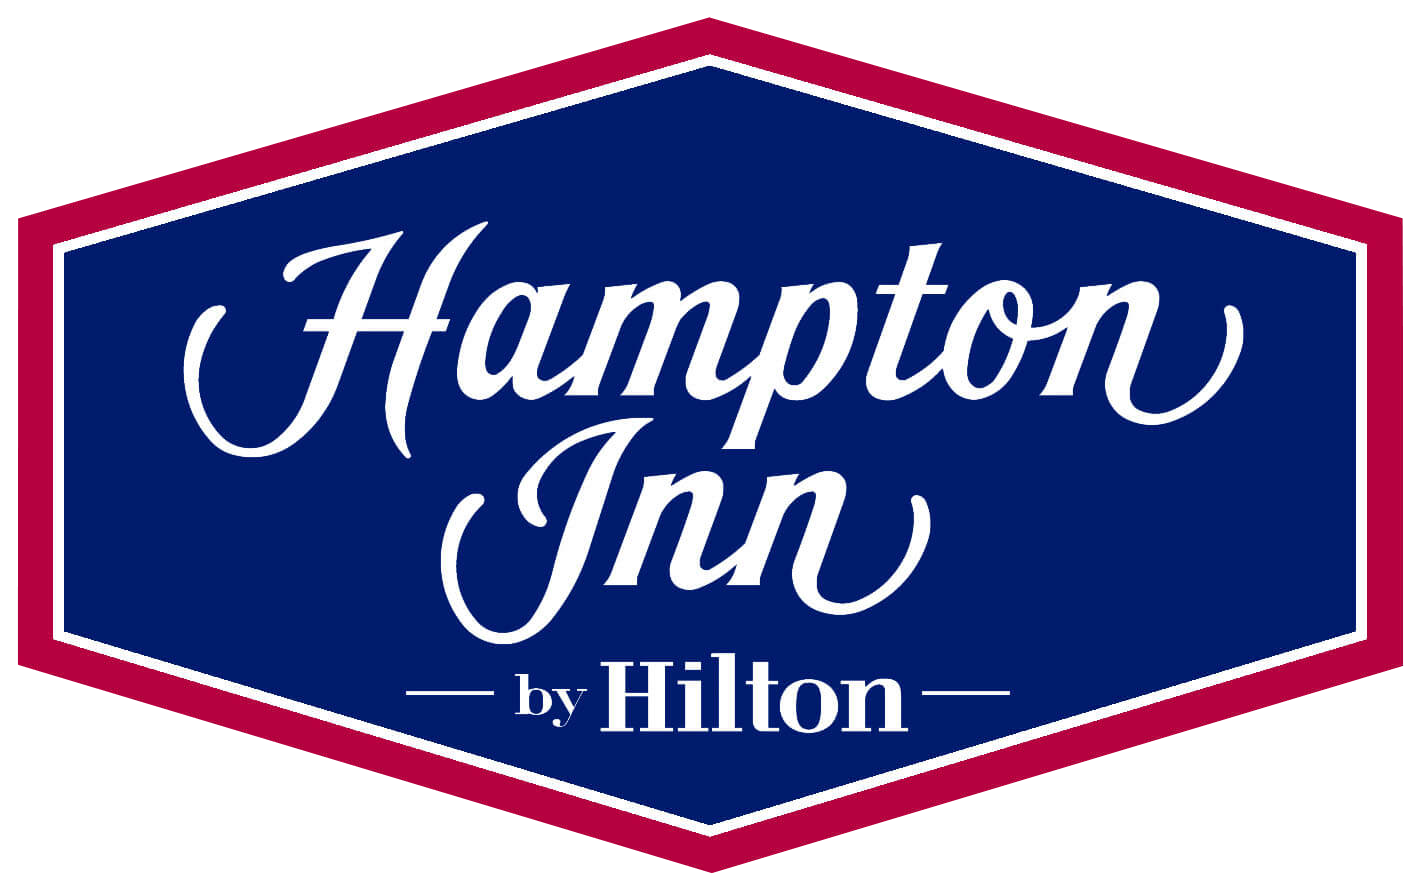 Hampton Inn by Hilton Logo